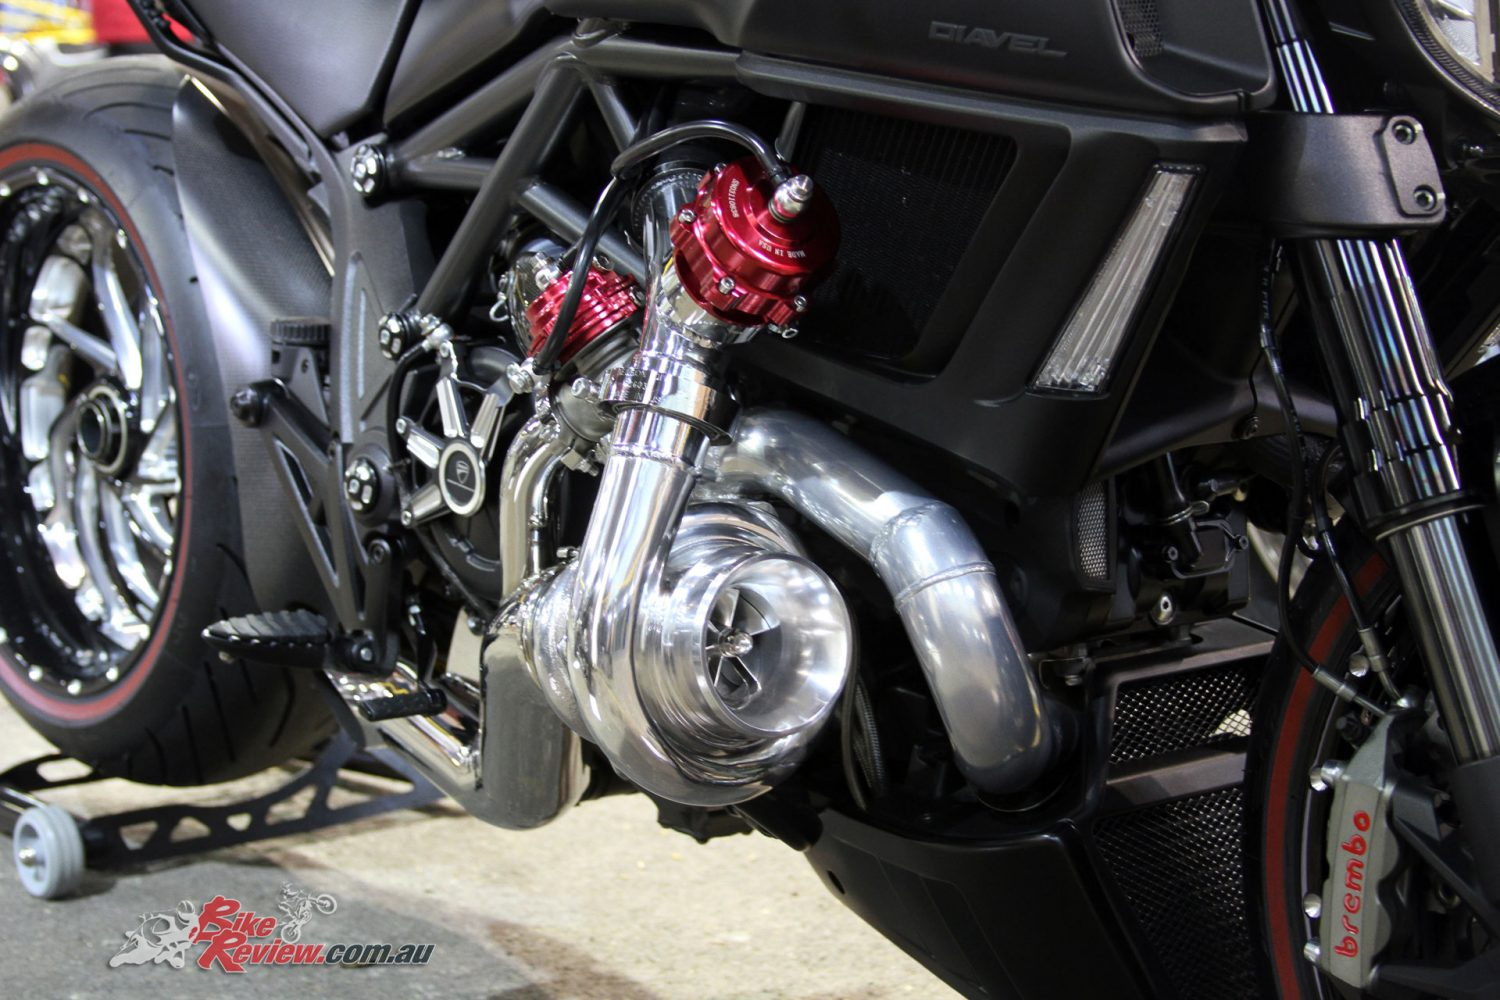 Turbo charged Ducati Diavel